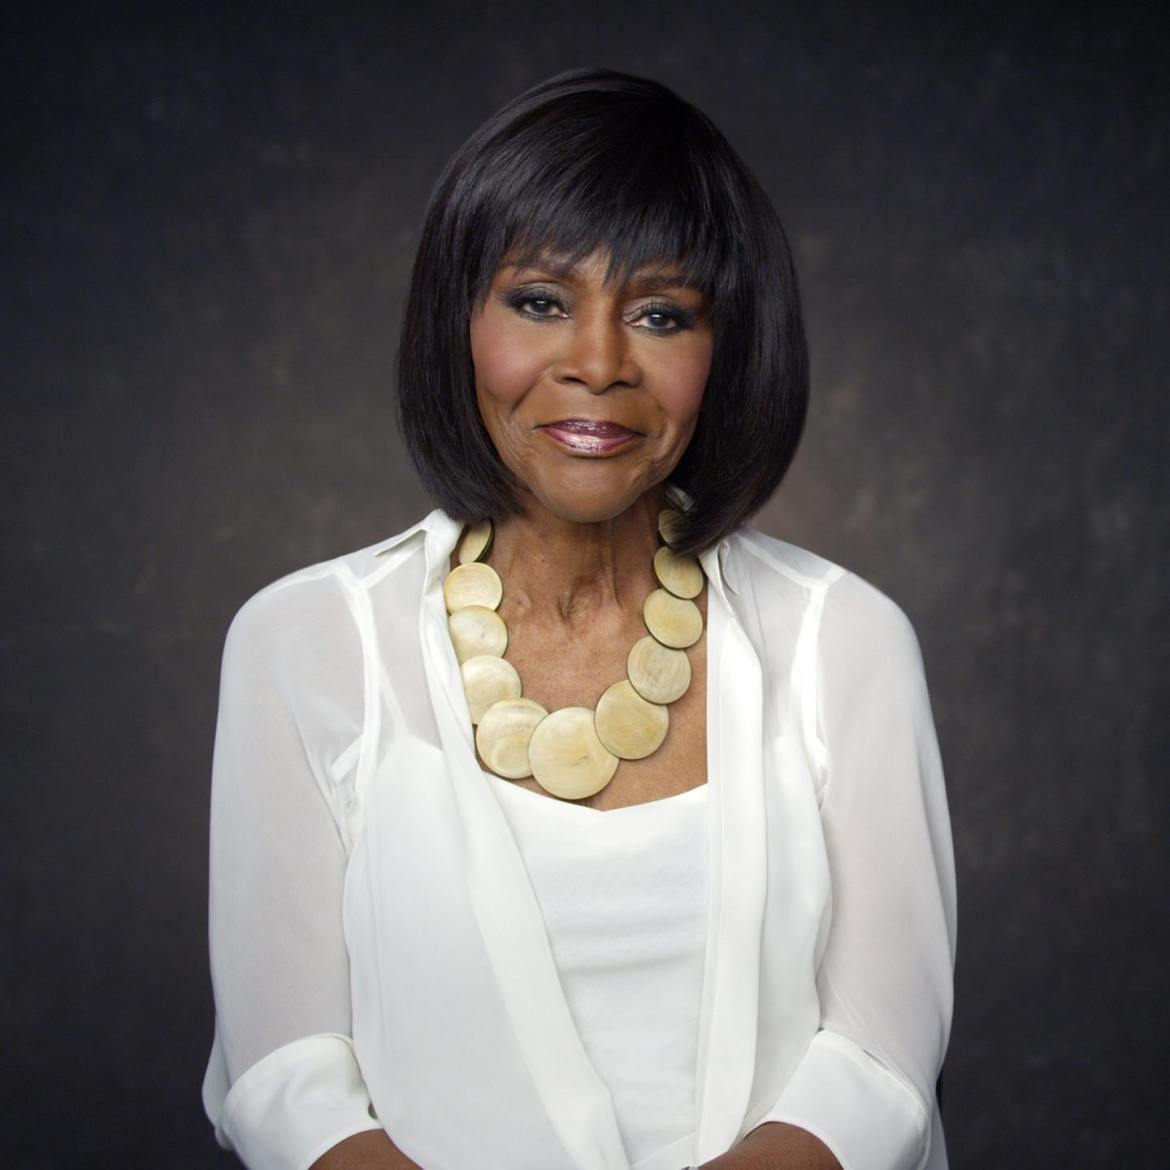 Hollywood Mourns The Death Of Legendary Actress Cicely Tyson-iHarare